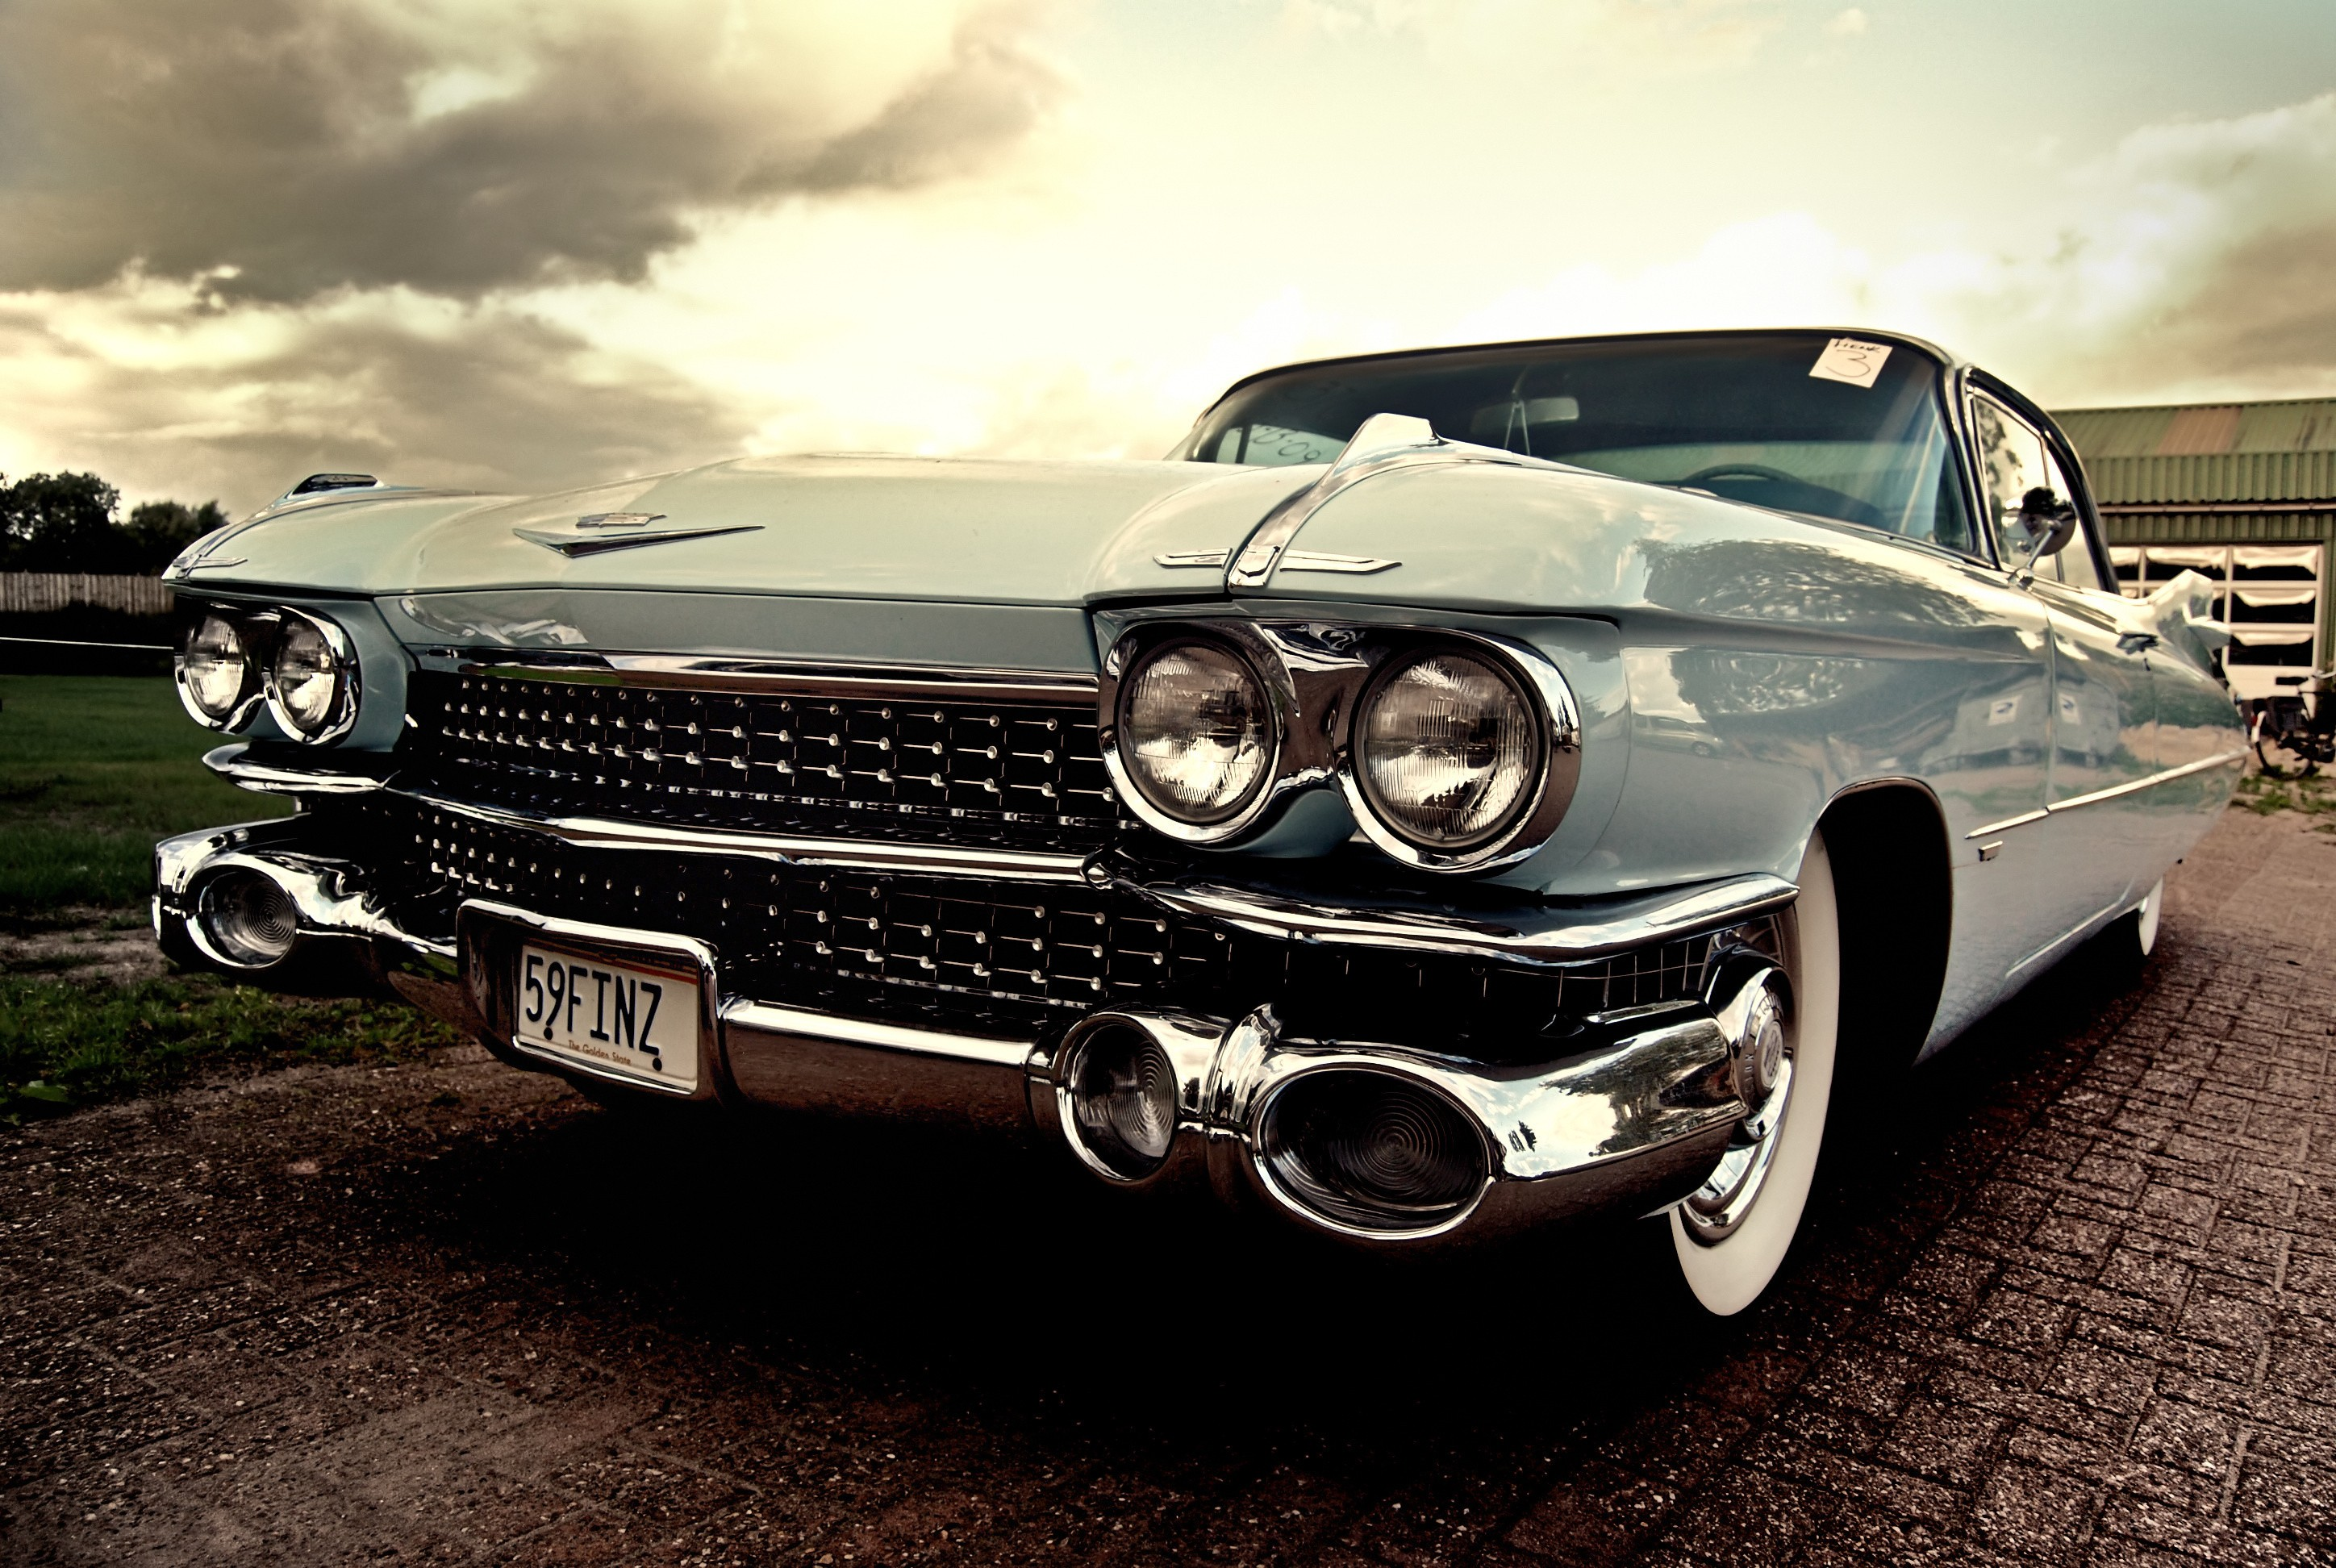 Classic Cars Hd Wallpapers 4k: Wallpaper Cadillac Eldorado Biarritz, HD, 4k, Swiss